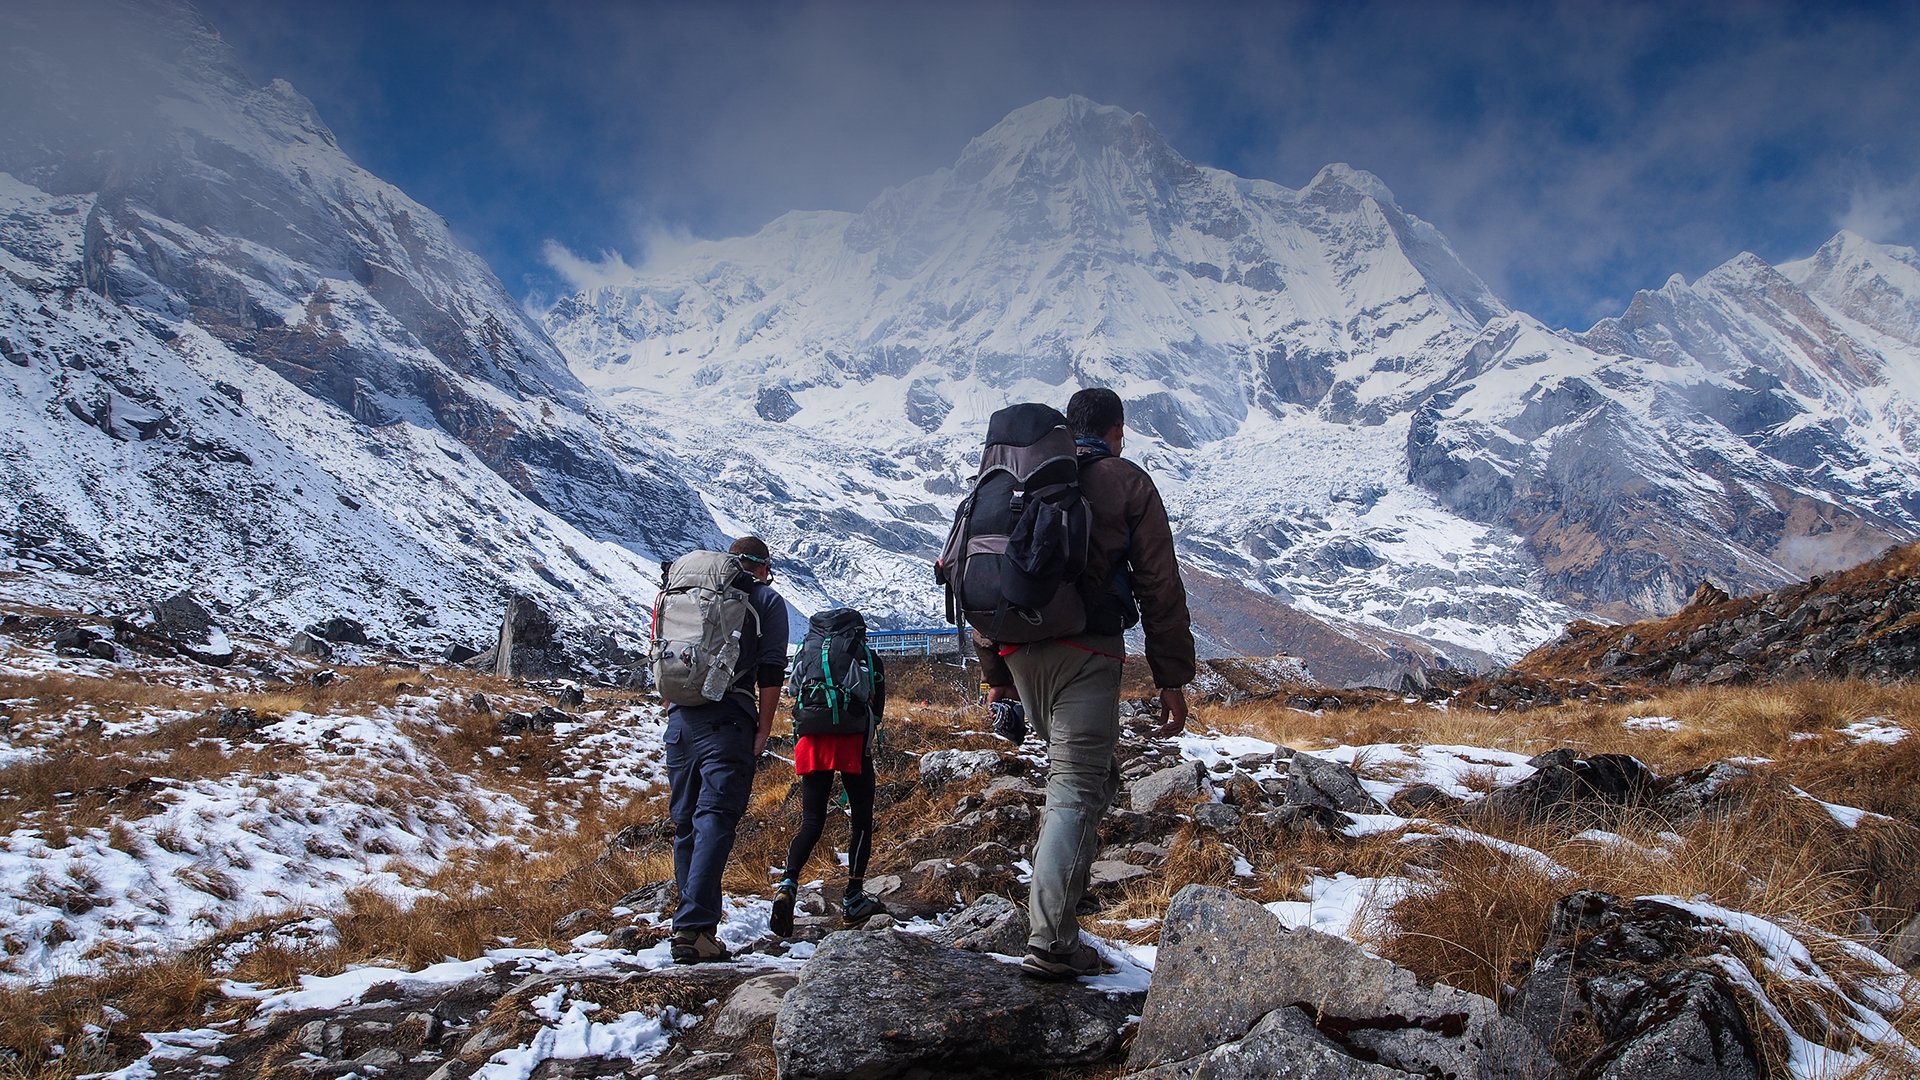 Day 05: Trek from MBC to Annapurna base camp (4130m) and trek back to Dovan (2600m)